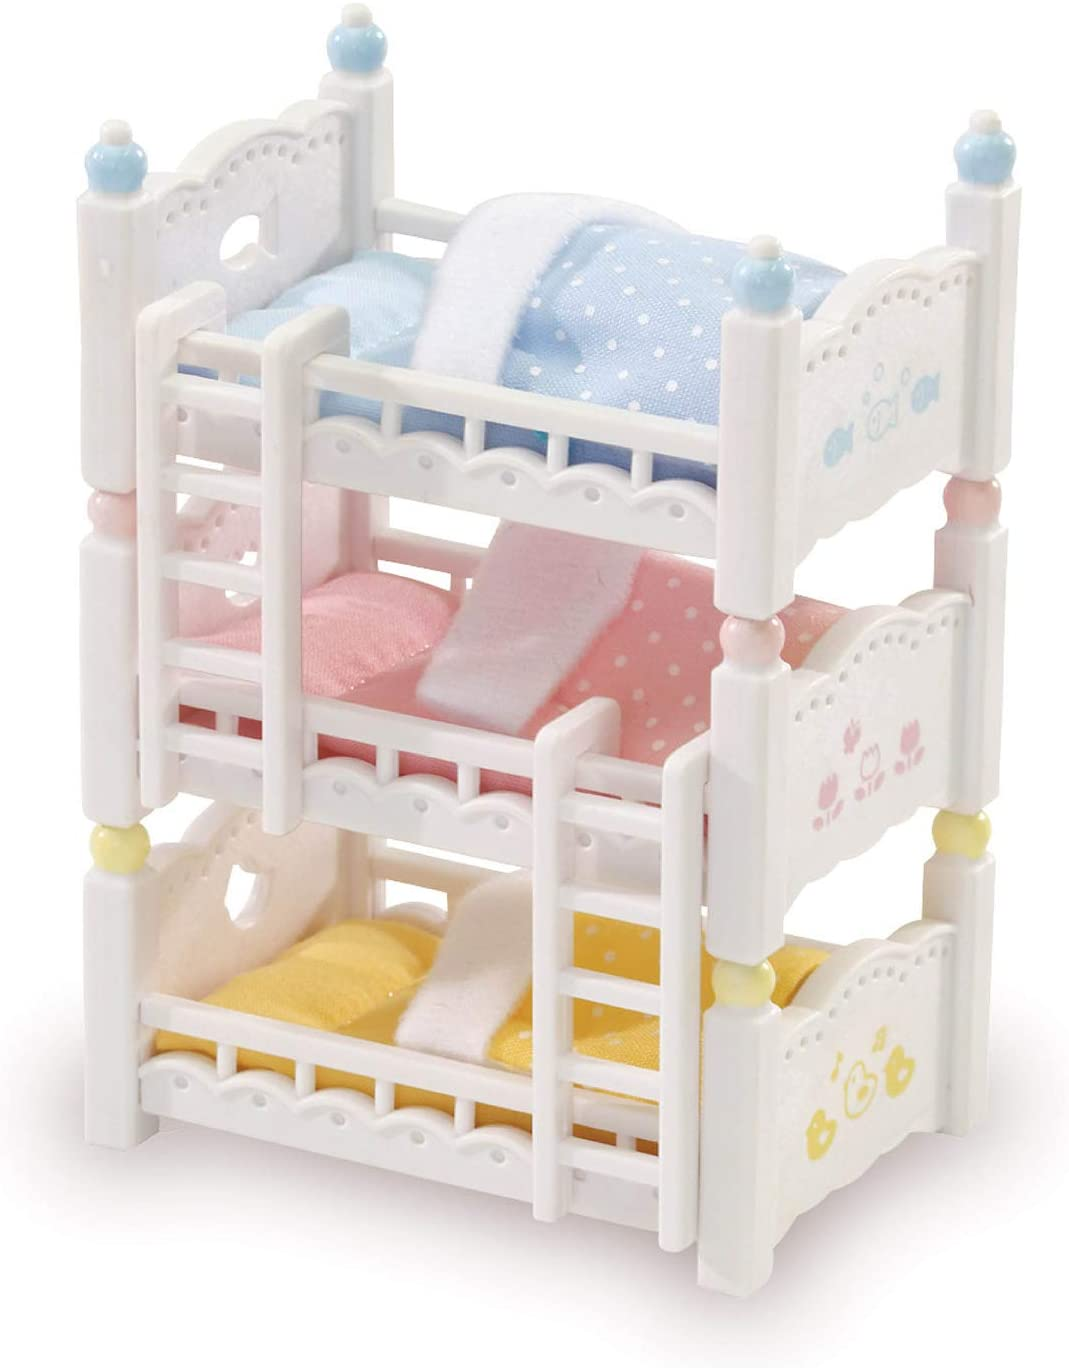 Top 15 Best Calico Critters (2020 Reviews & Buying Guide) 8